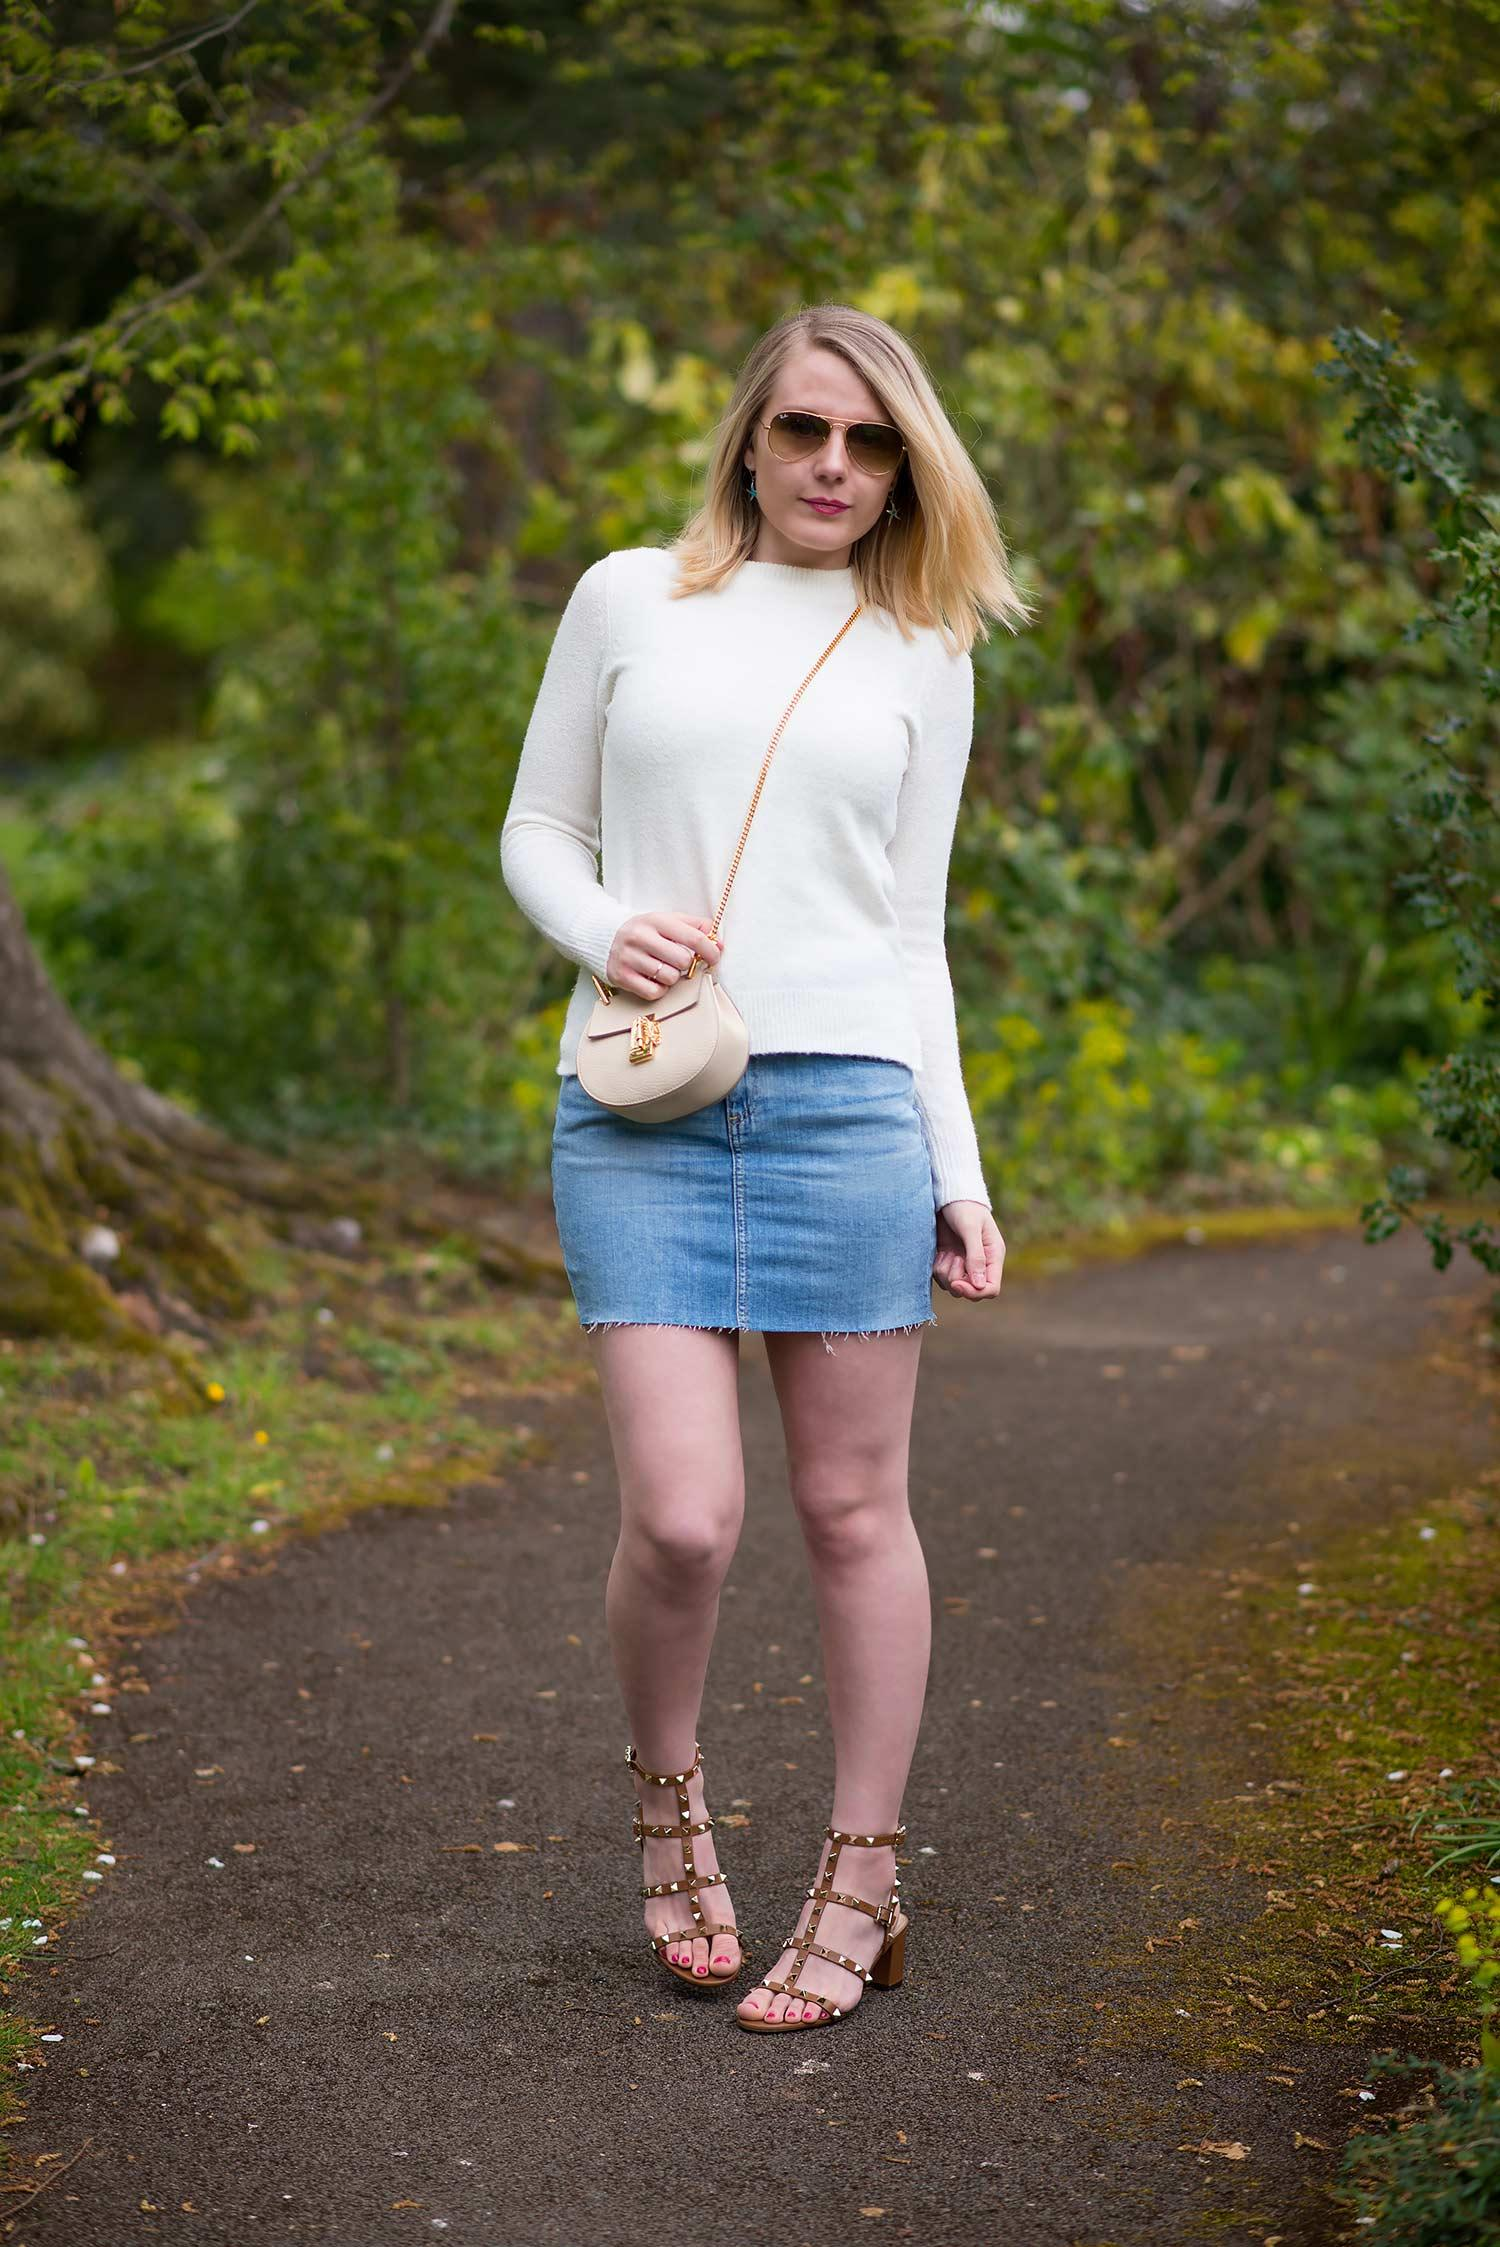 ag denim mini skirt with sweater and sandals